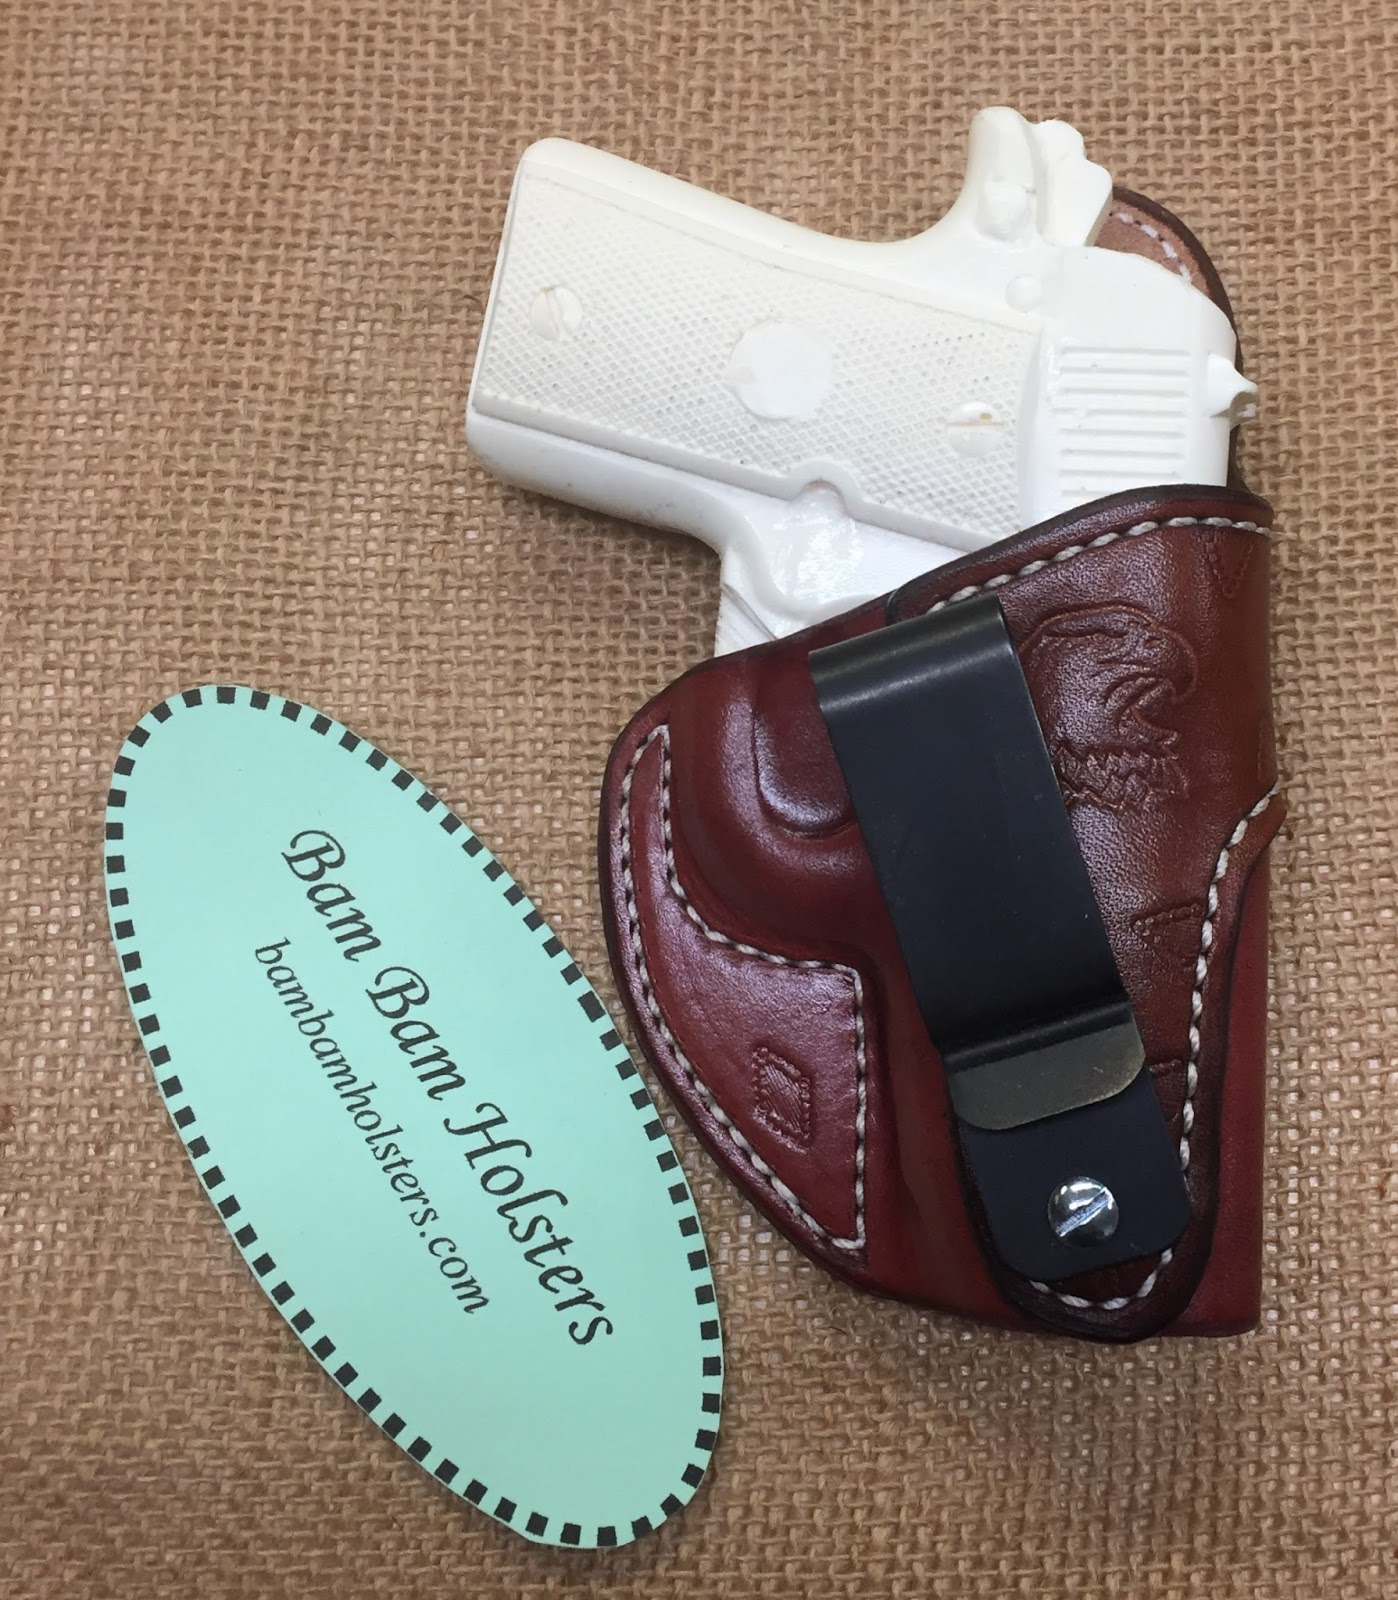 Bam Bam Holsters: Holster Build final part 4 / What's on the